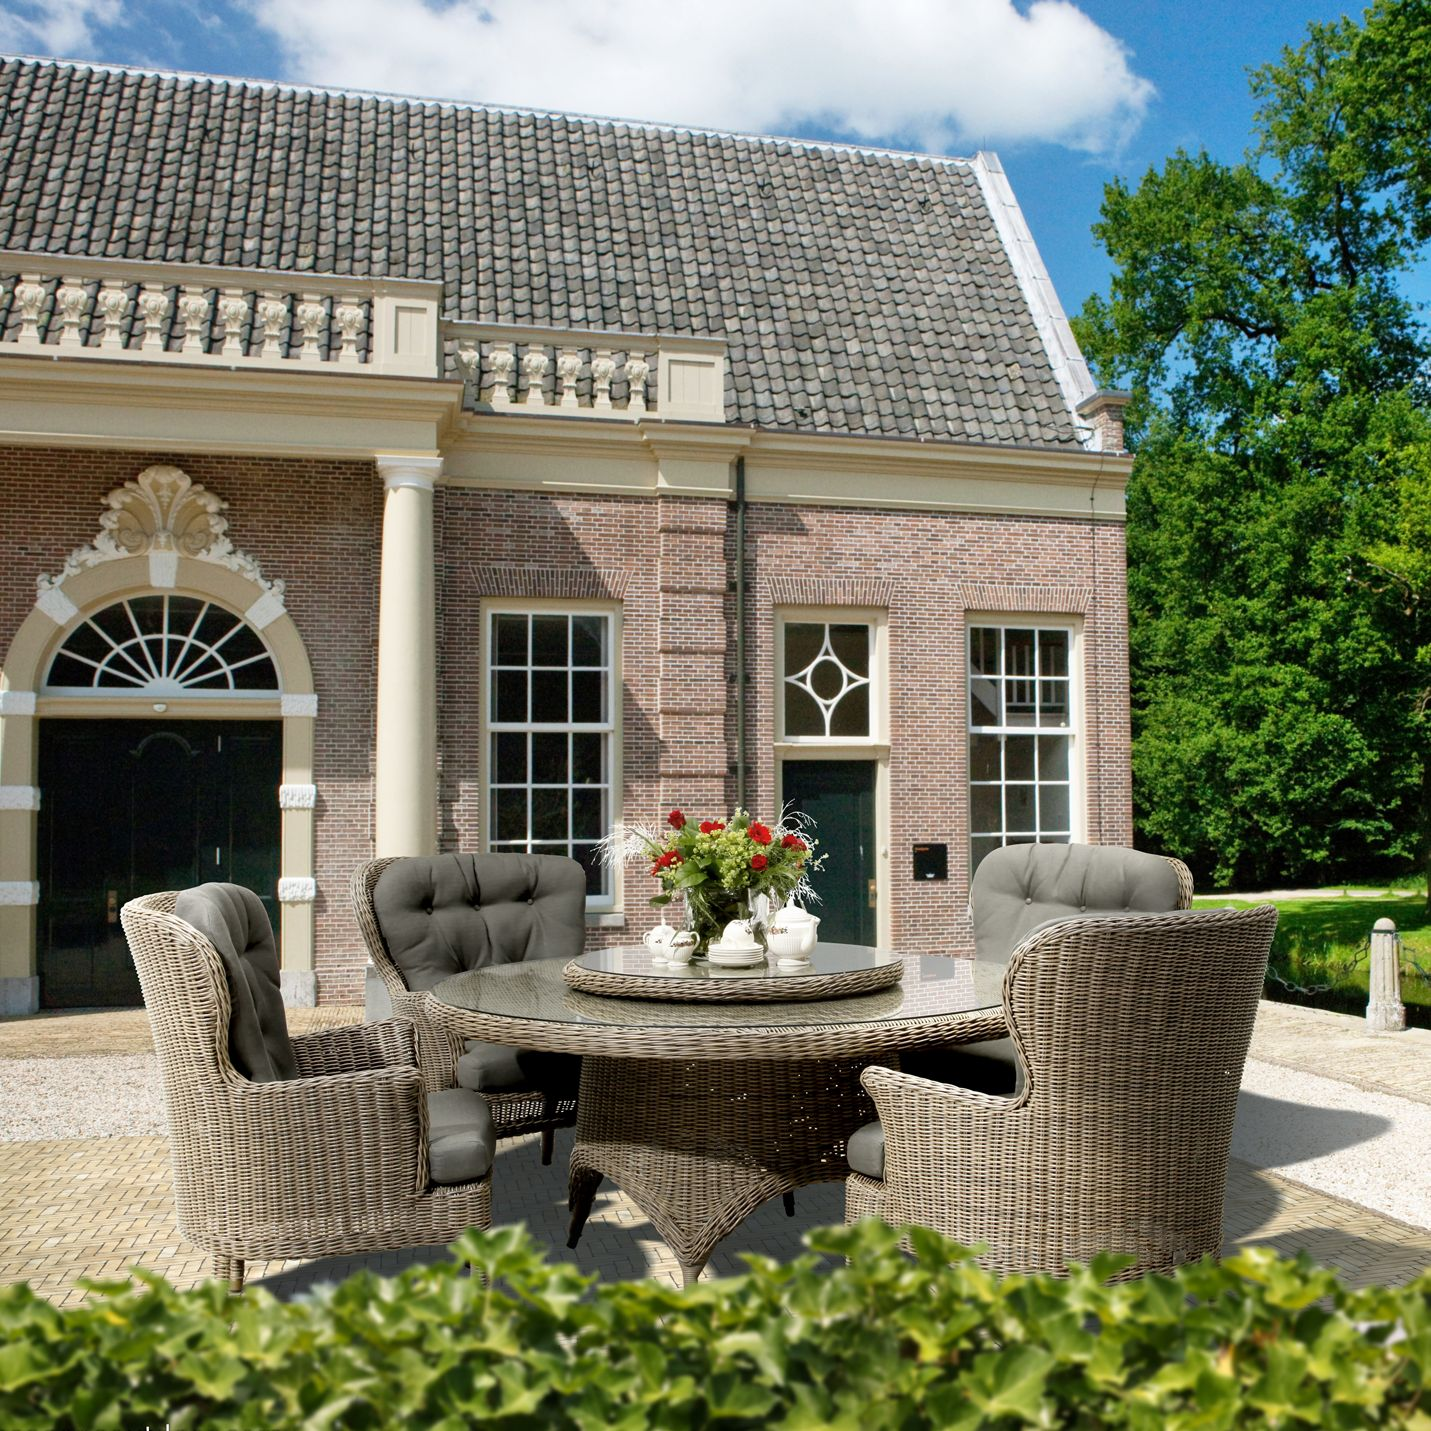 4 Seasons Outdoor Victoria Dining Table and 4 Buckingham Seats